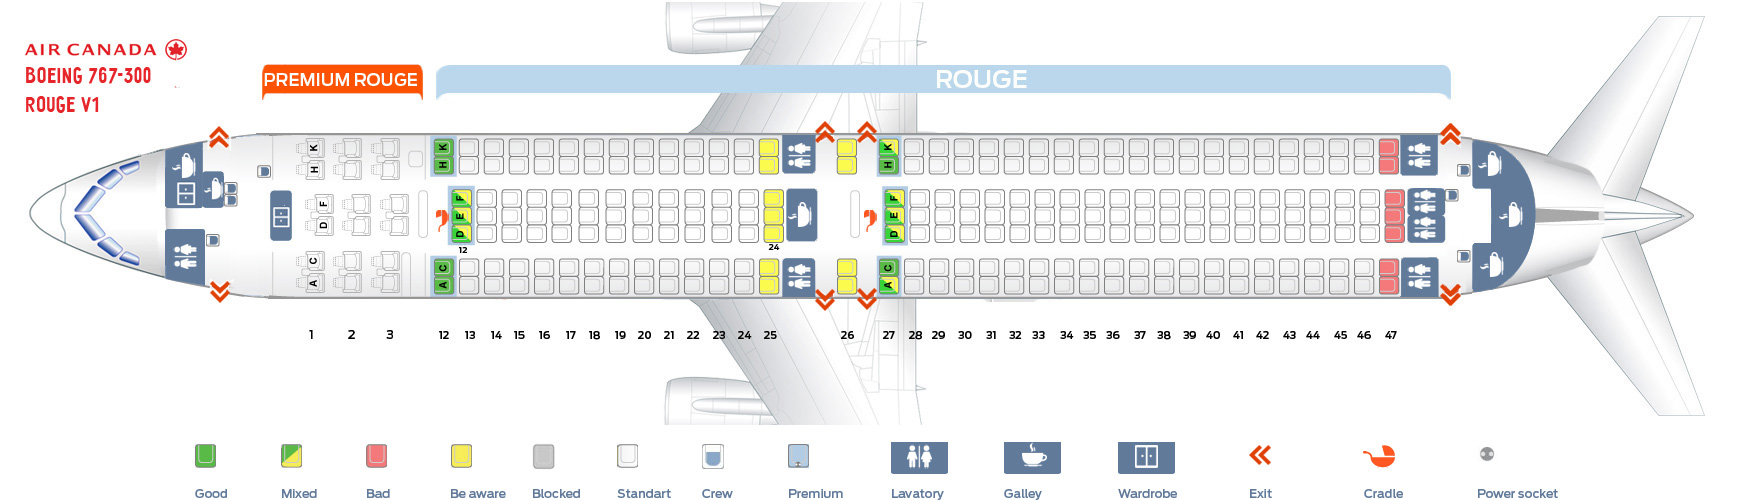 hight resolution of first cabin confuguration seat map and seating chart boeing 767 300er air canada rouge